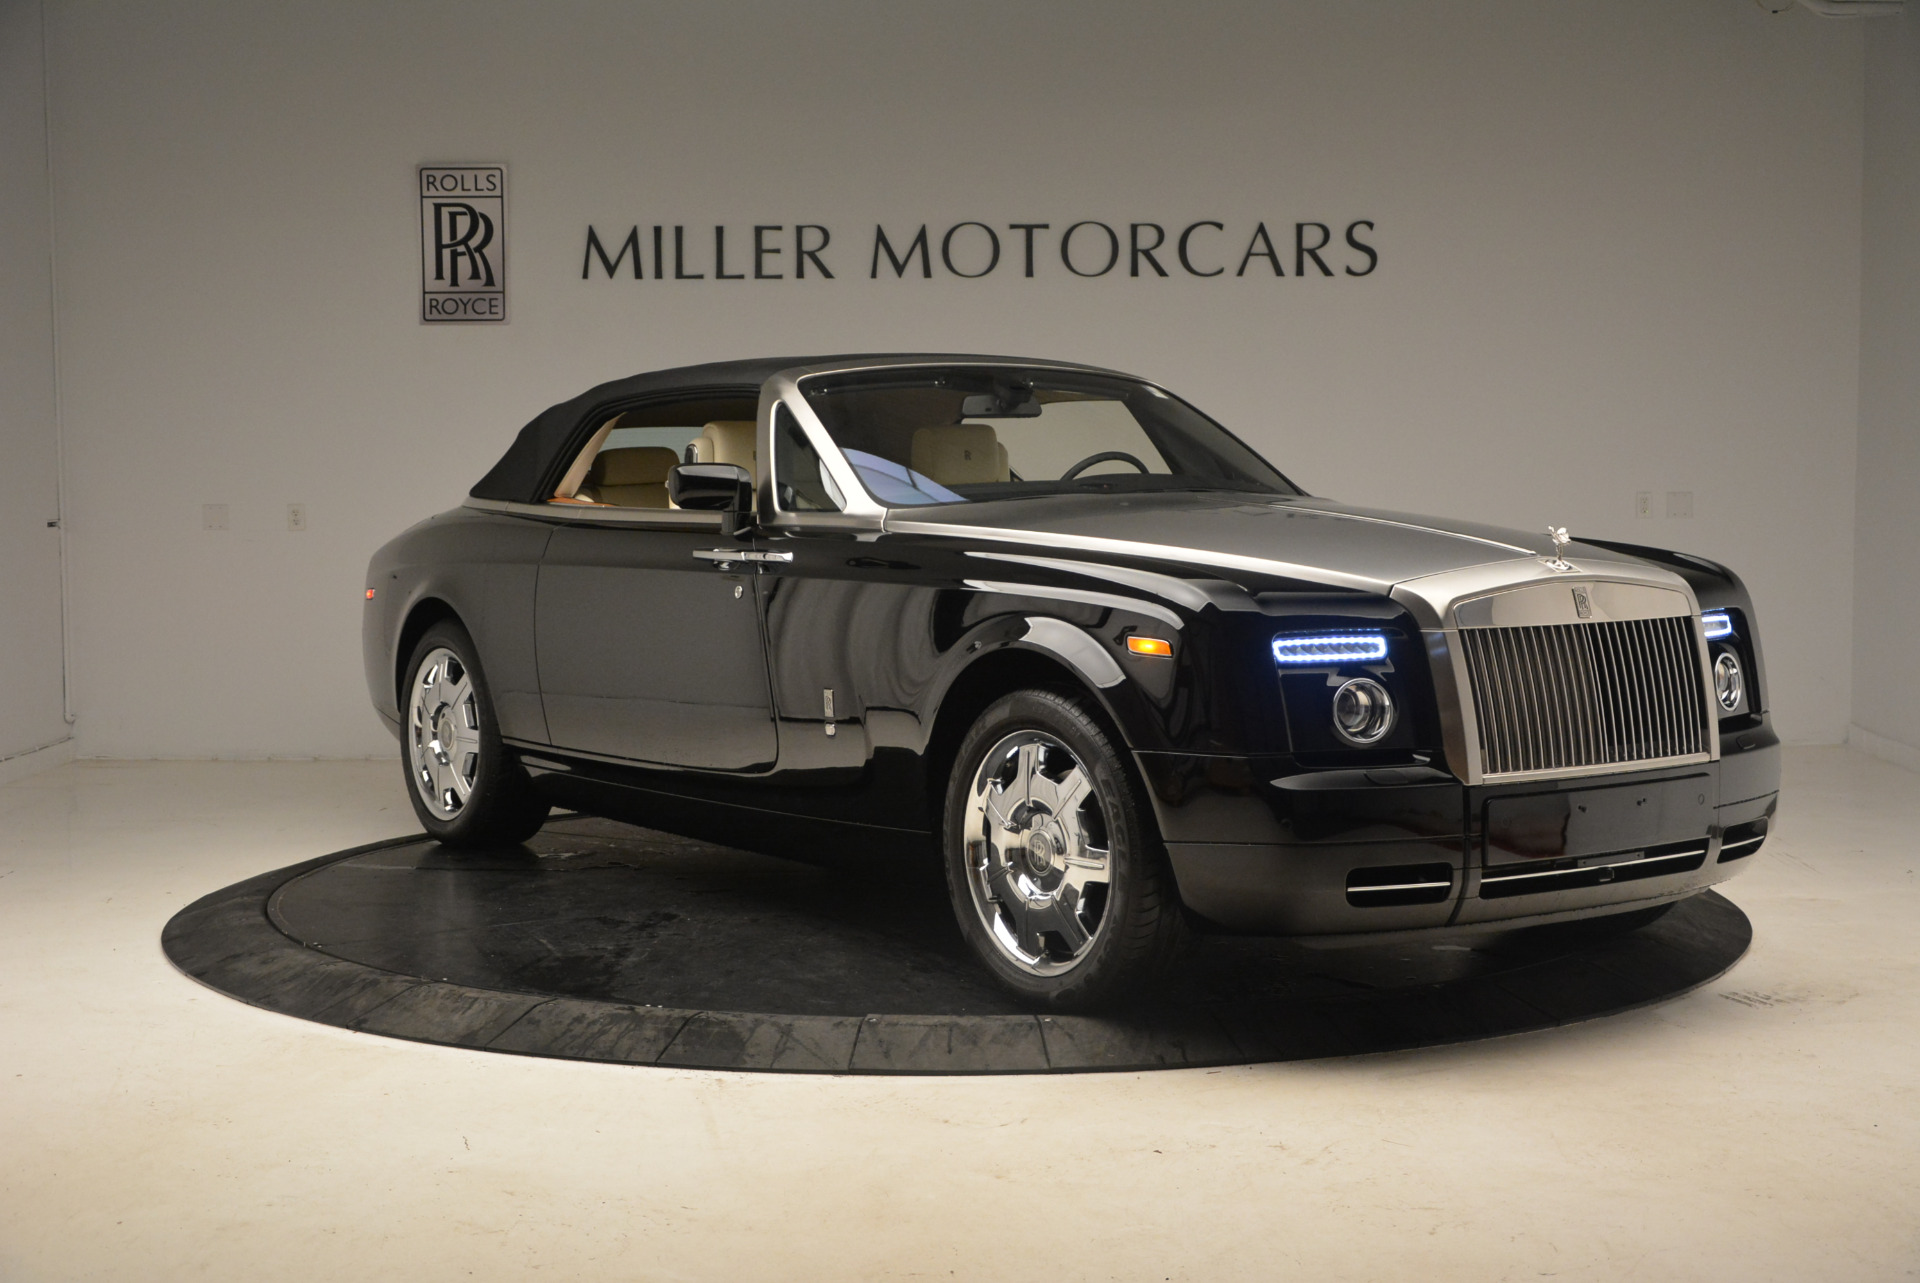 Used 2009 Rolls-Royce Phantom Drophead Coupe  For Sale In Greenwich, CT. Alfa Romeo of Greenwich, 7296 1792_p23